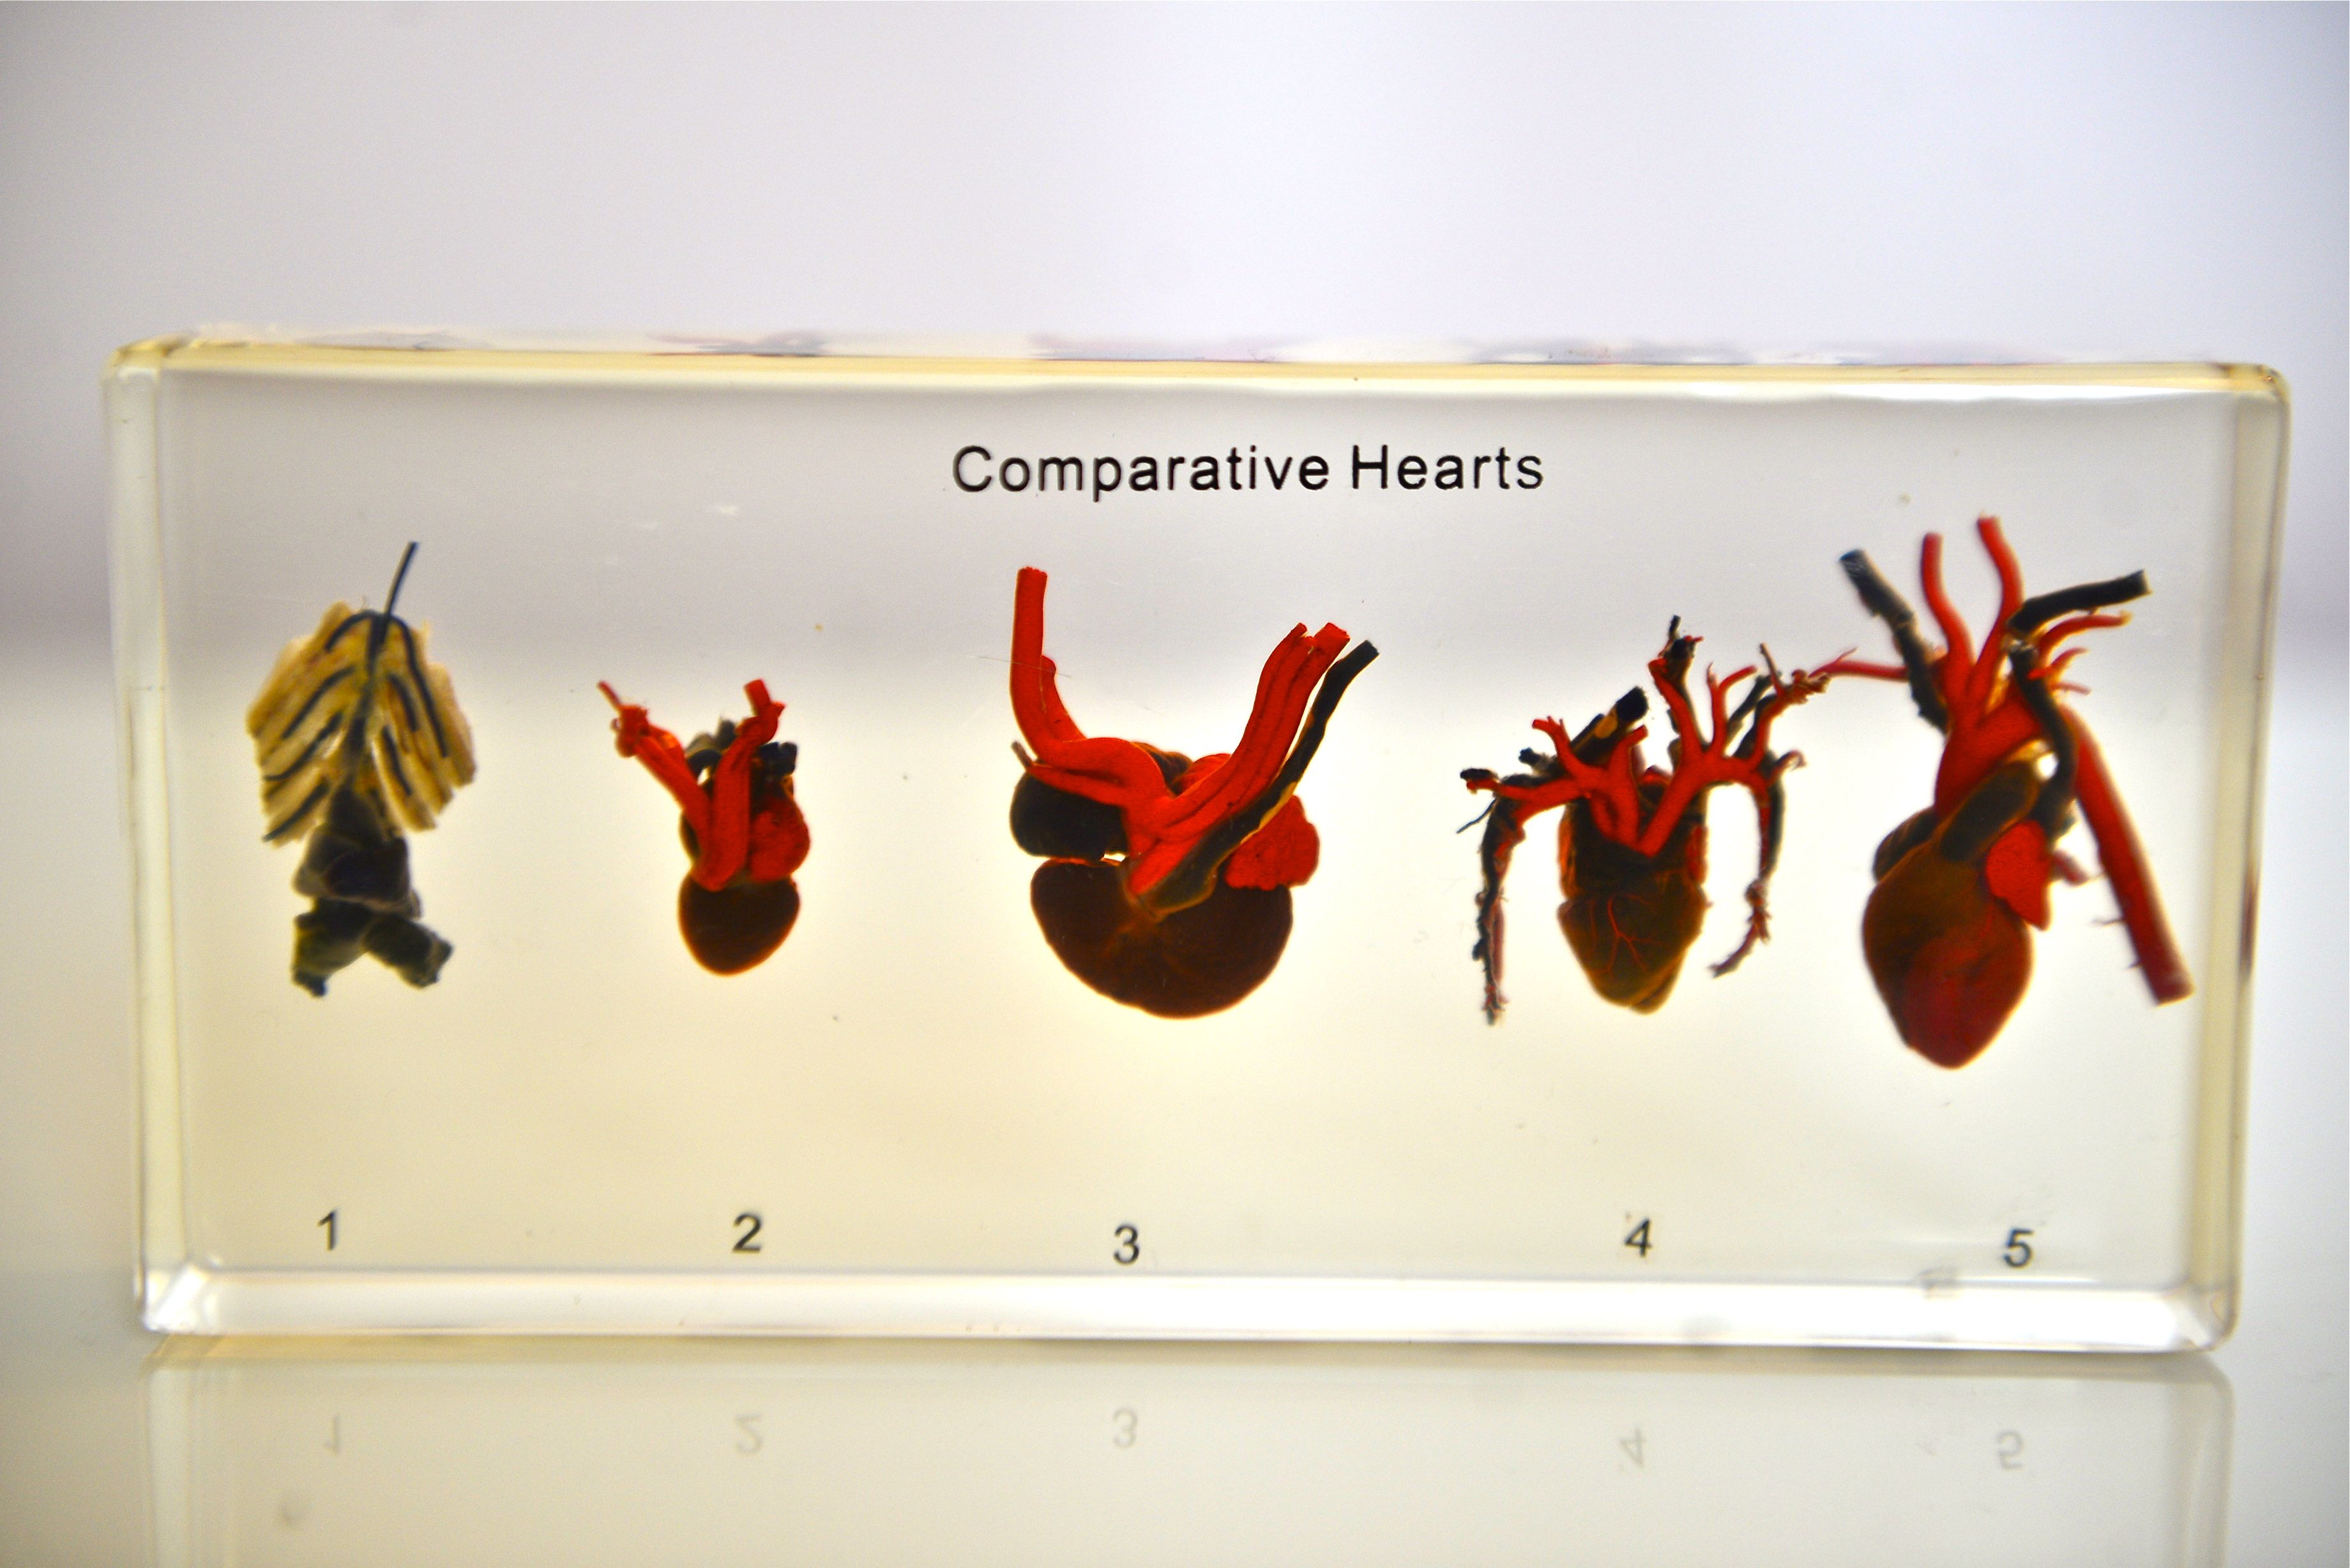 This Comparison Includes Hearts From Five Different Animal